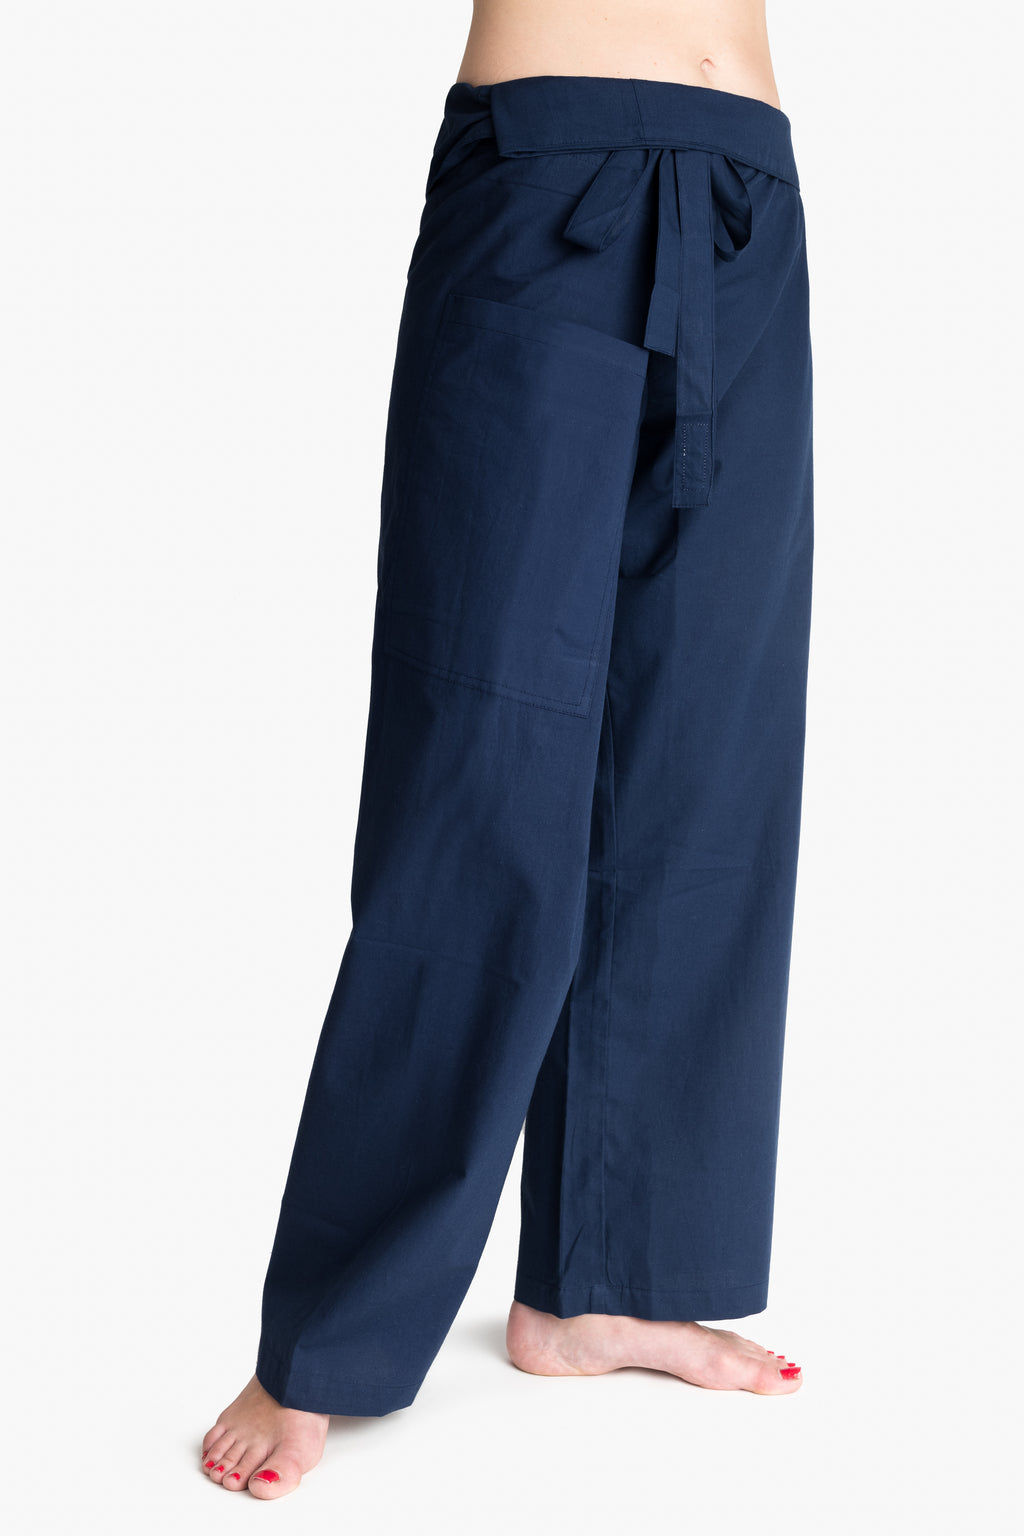 Yoga / Thai Fisherman Trousers - Blue